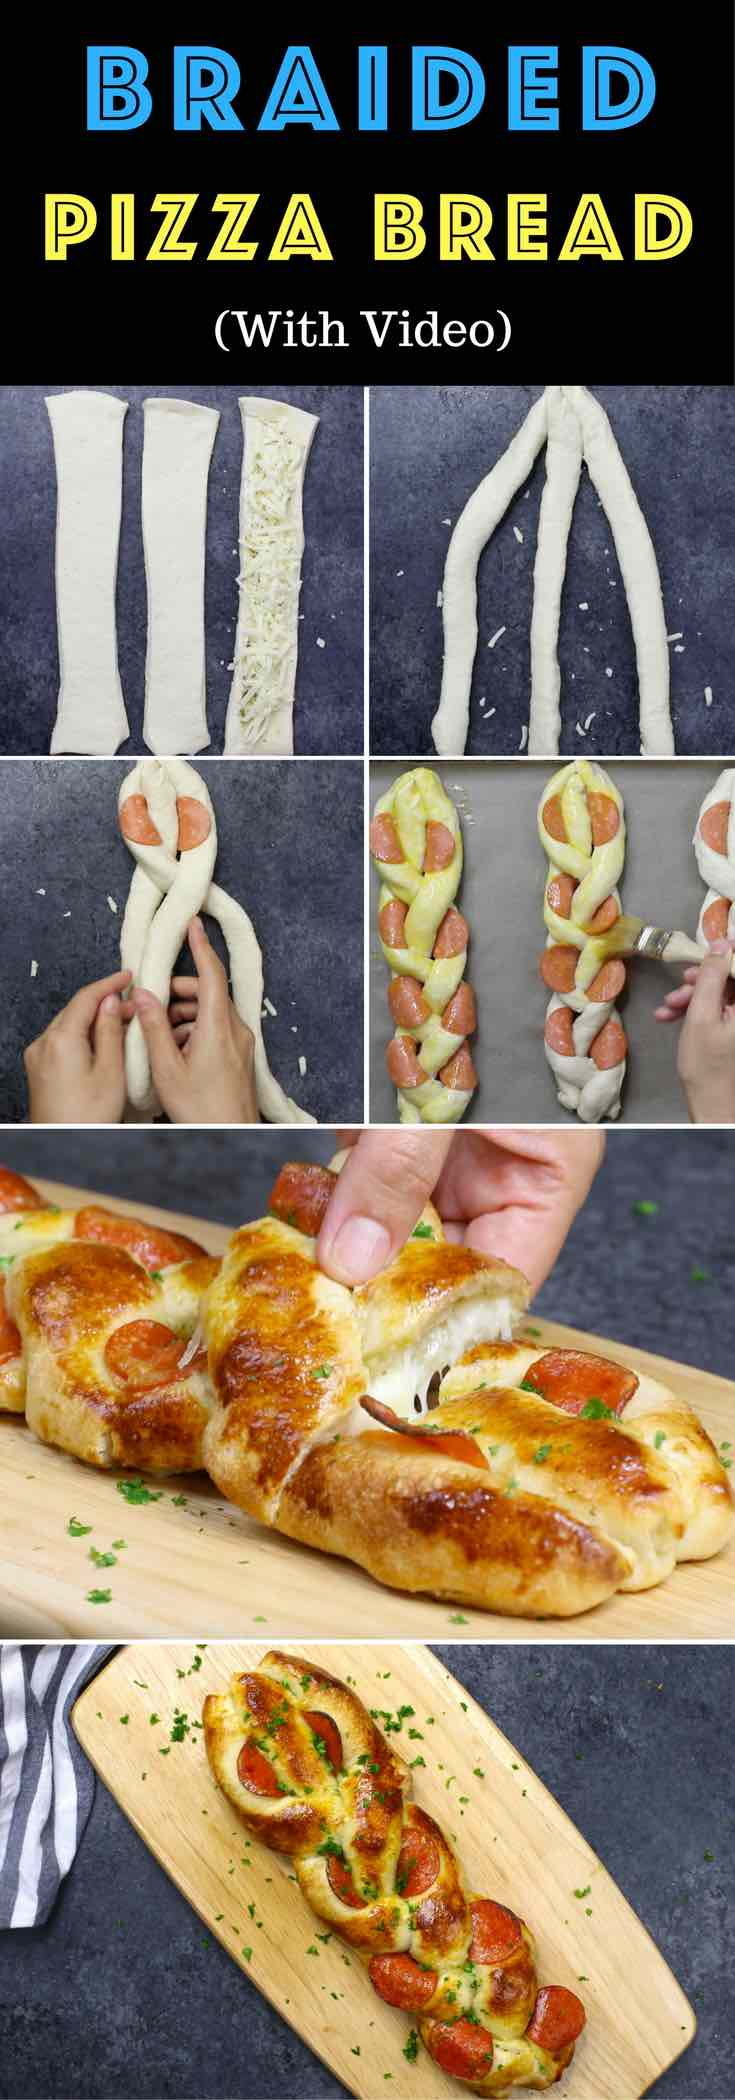 Braided Pizza Bread - a delicious appetizer for sharing on game day or a party, easy to make with a few simple ingredients: refrigerated pizza dough, olive oil, italian seasoning and pepperoni with fresh parsley for garnish. So good. Video recipe.